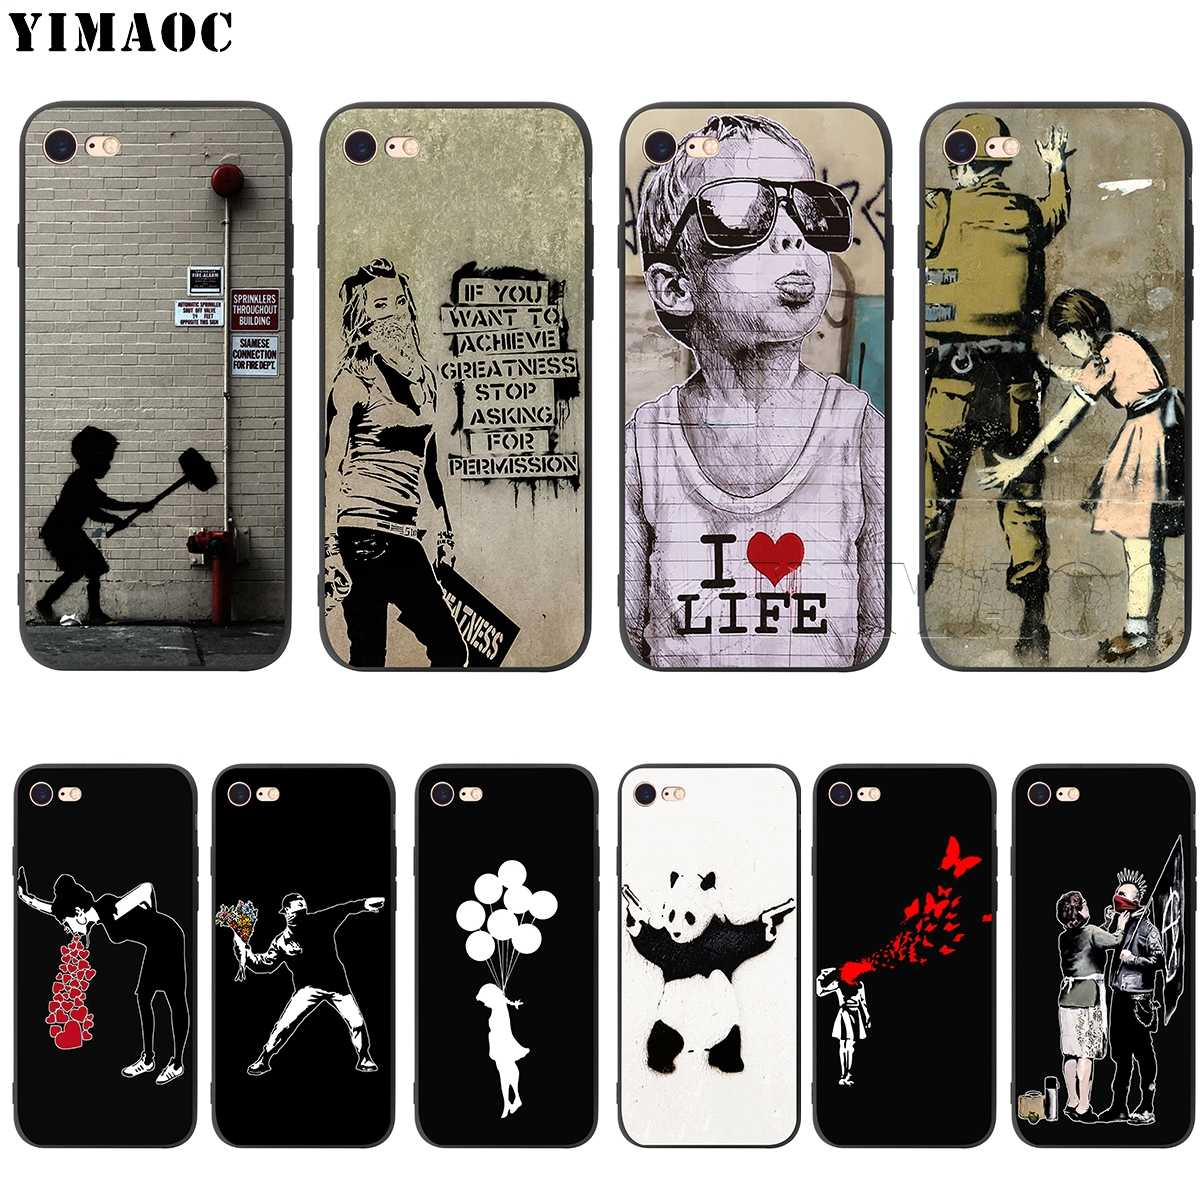 YIMAOC Banksy Graffiti ซิลิโคนนุ่มสำหรับ iPhone 11 Pro XS Max XR X 8 7 6 6S Plus 5 5S SE